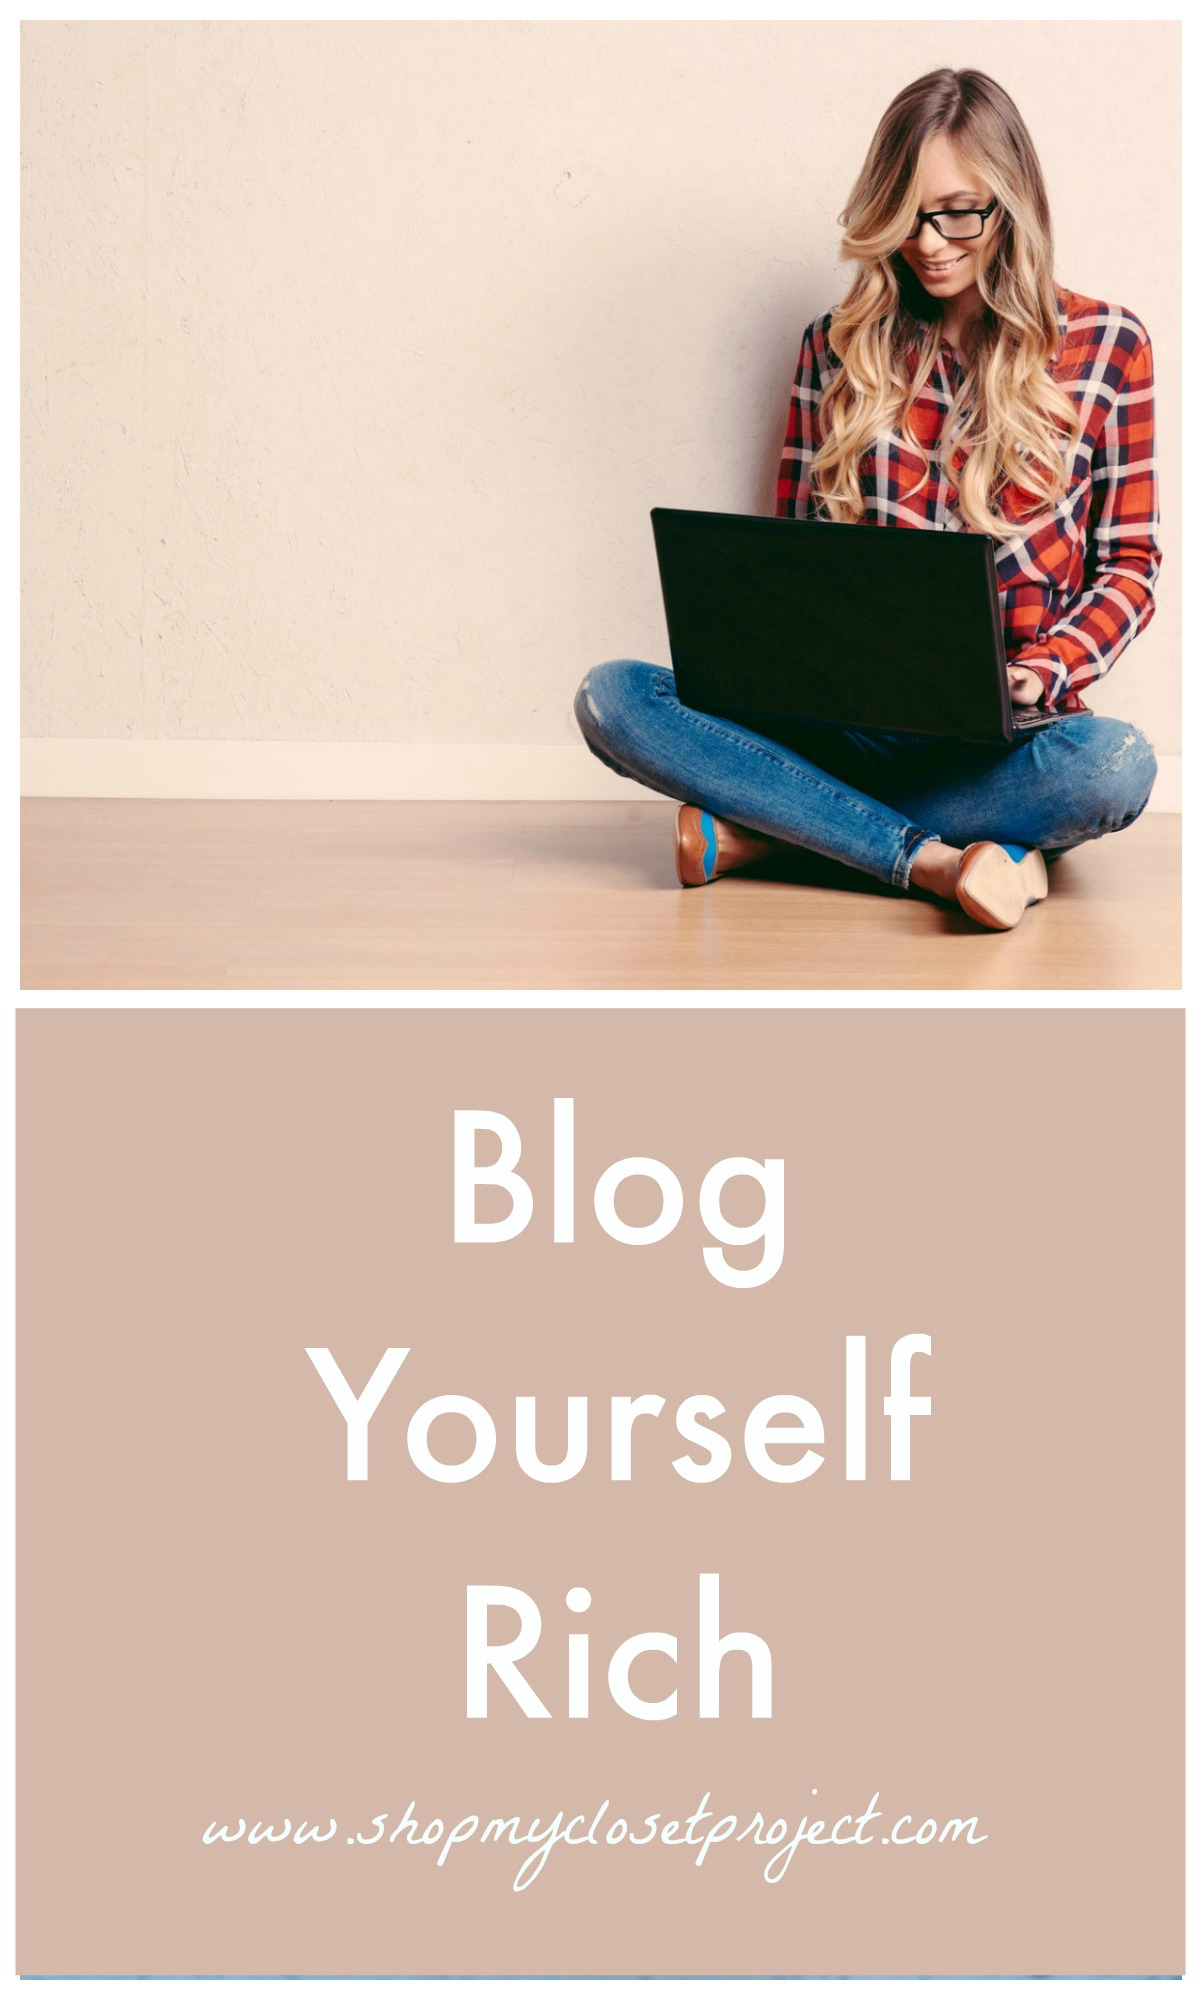 Blog Yourself Rich